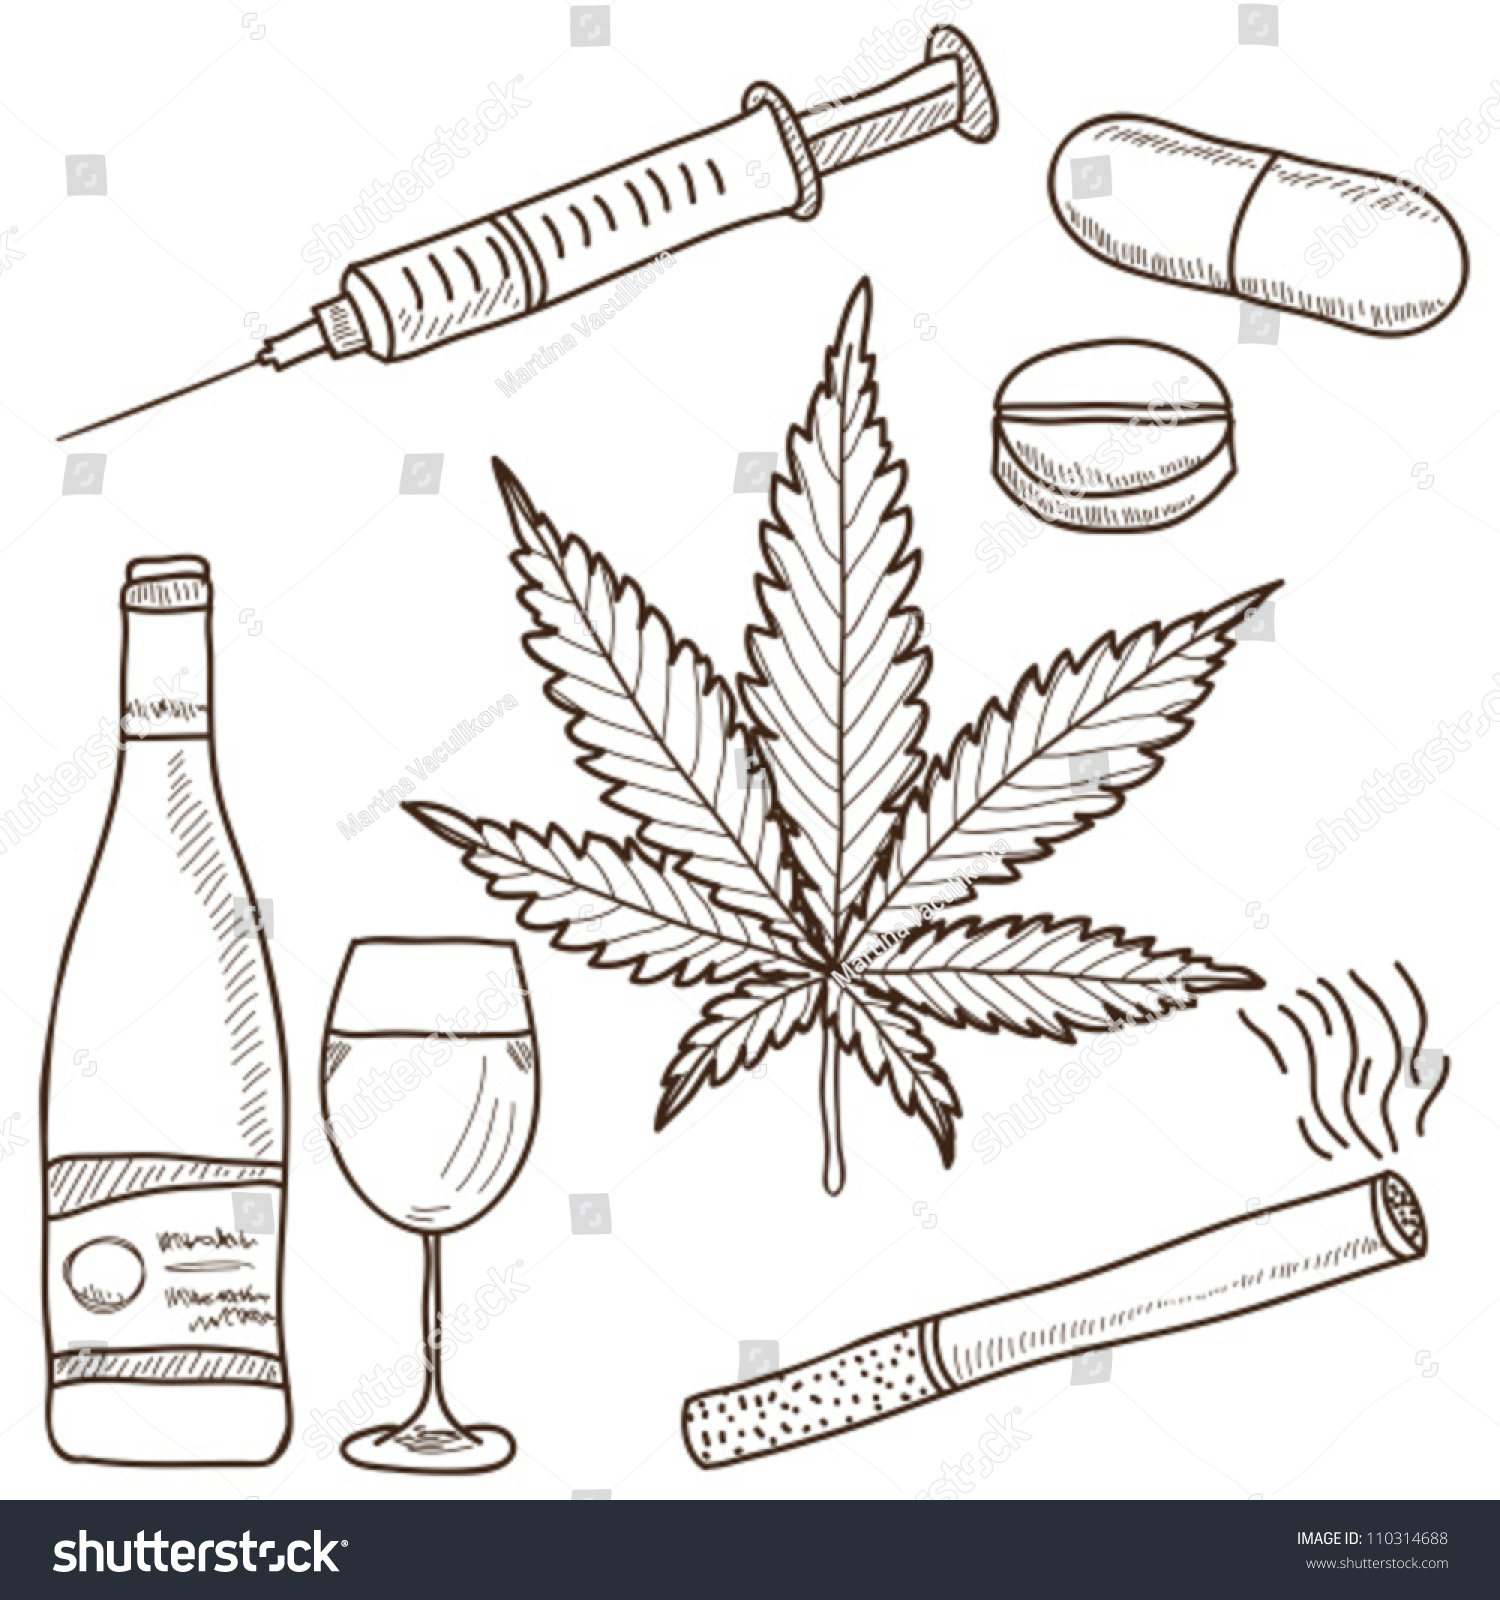 illegal drugs outline Start studying sociology chapter 12 alcohol and drug abuse my notes learn vocabulary, terms, and more with flashcards, games, and other study tools.